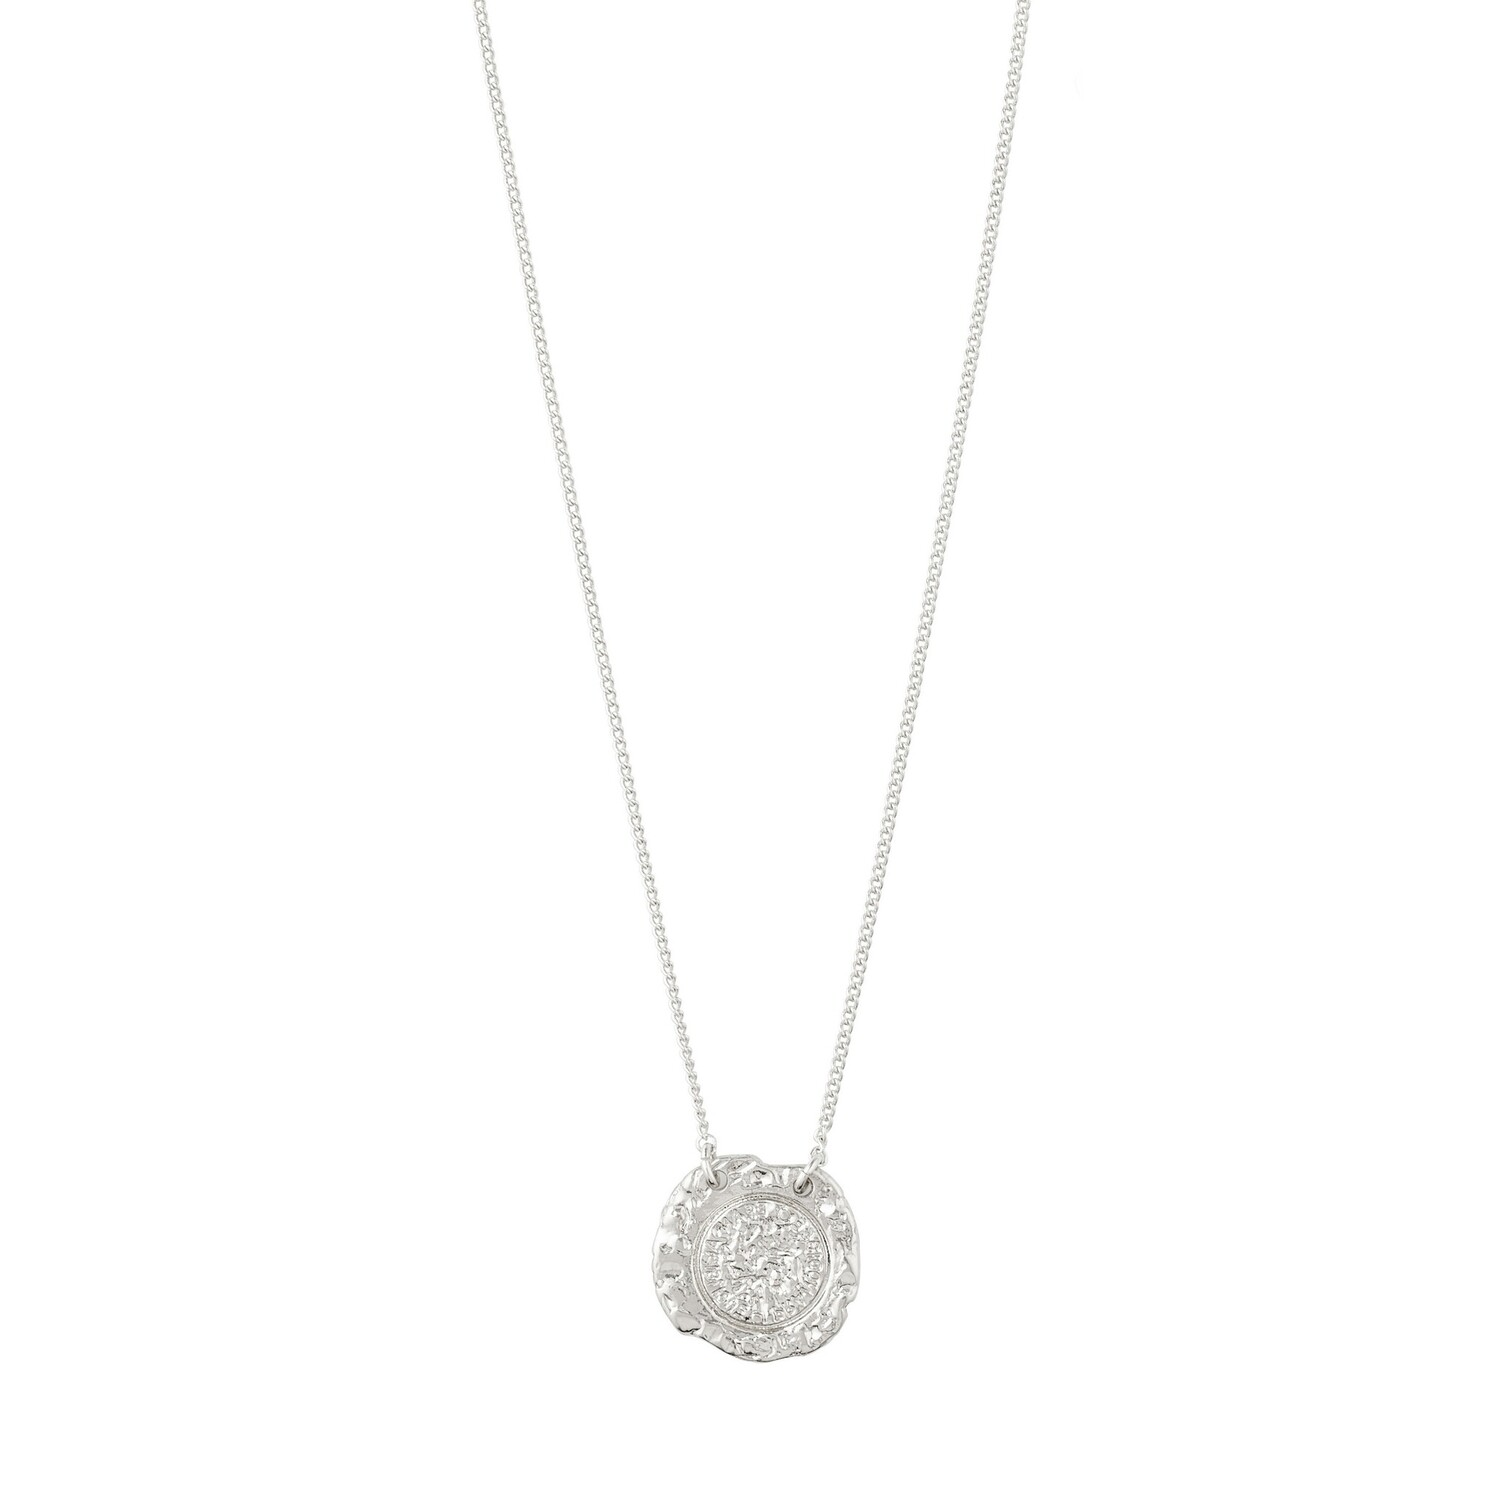 Pilgrim Silver Marley Coin Necklace